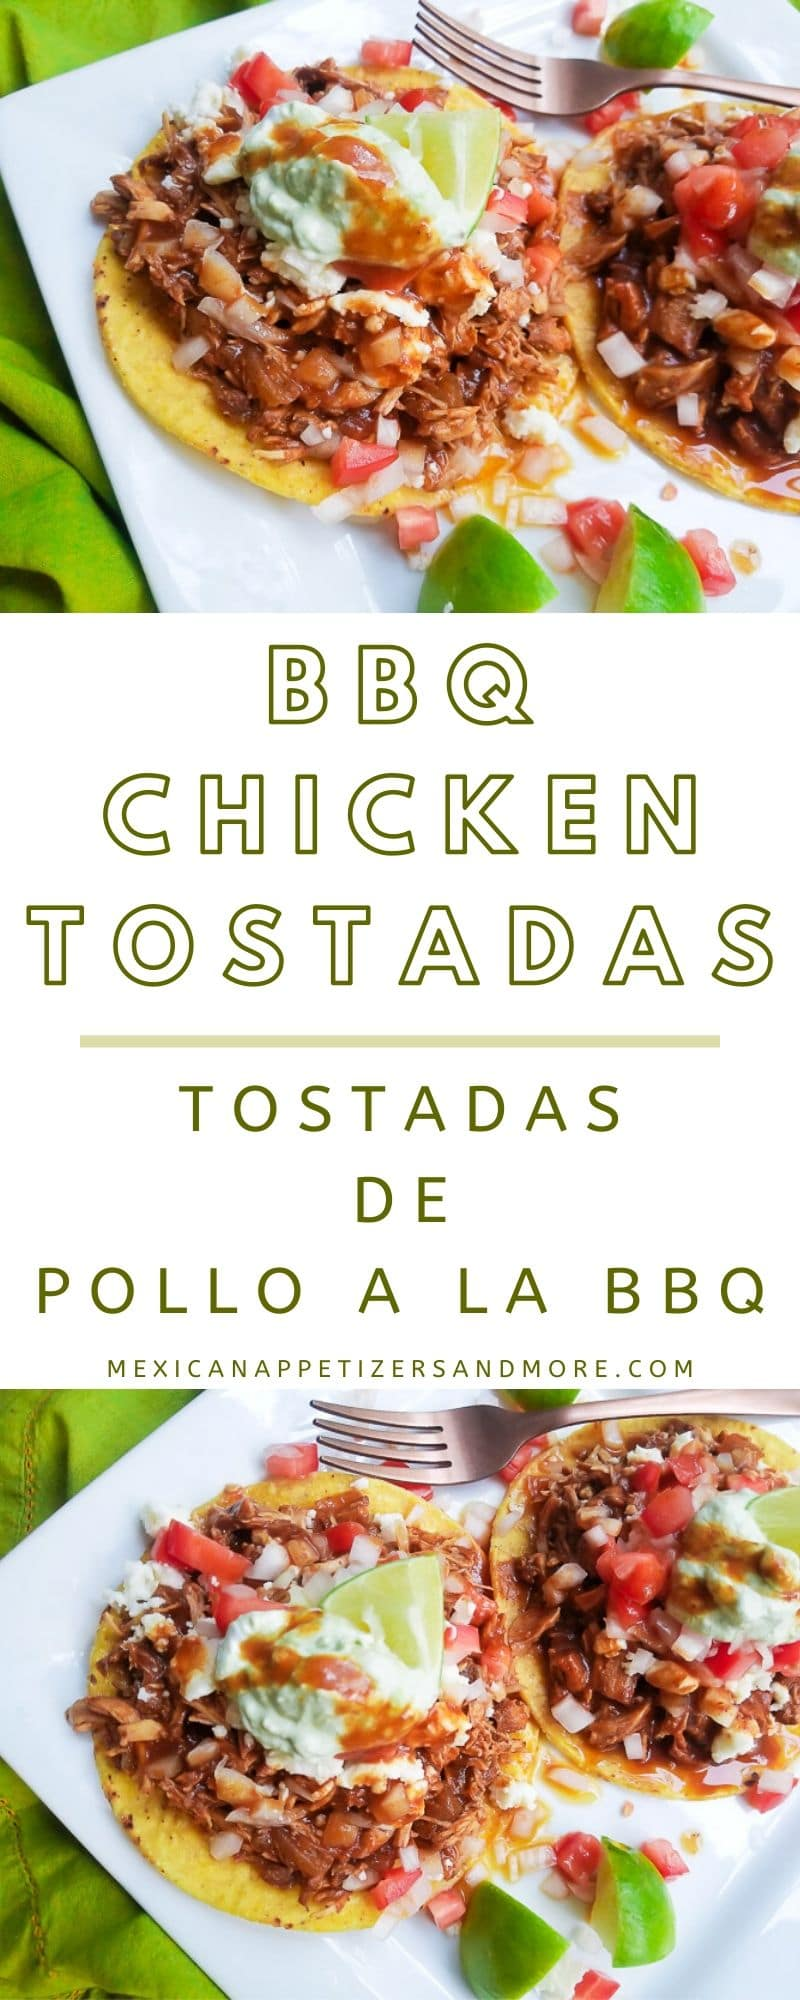 These BBQ Chicken Tostadas will become a family favorite especially for the kiddos! Looking for a \